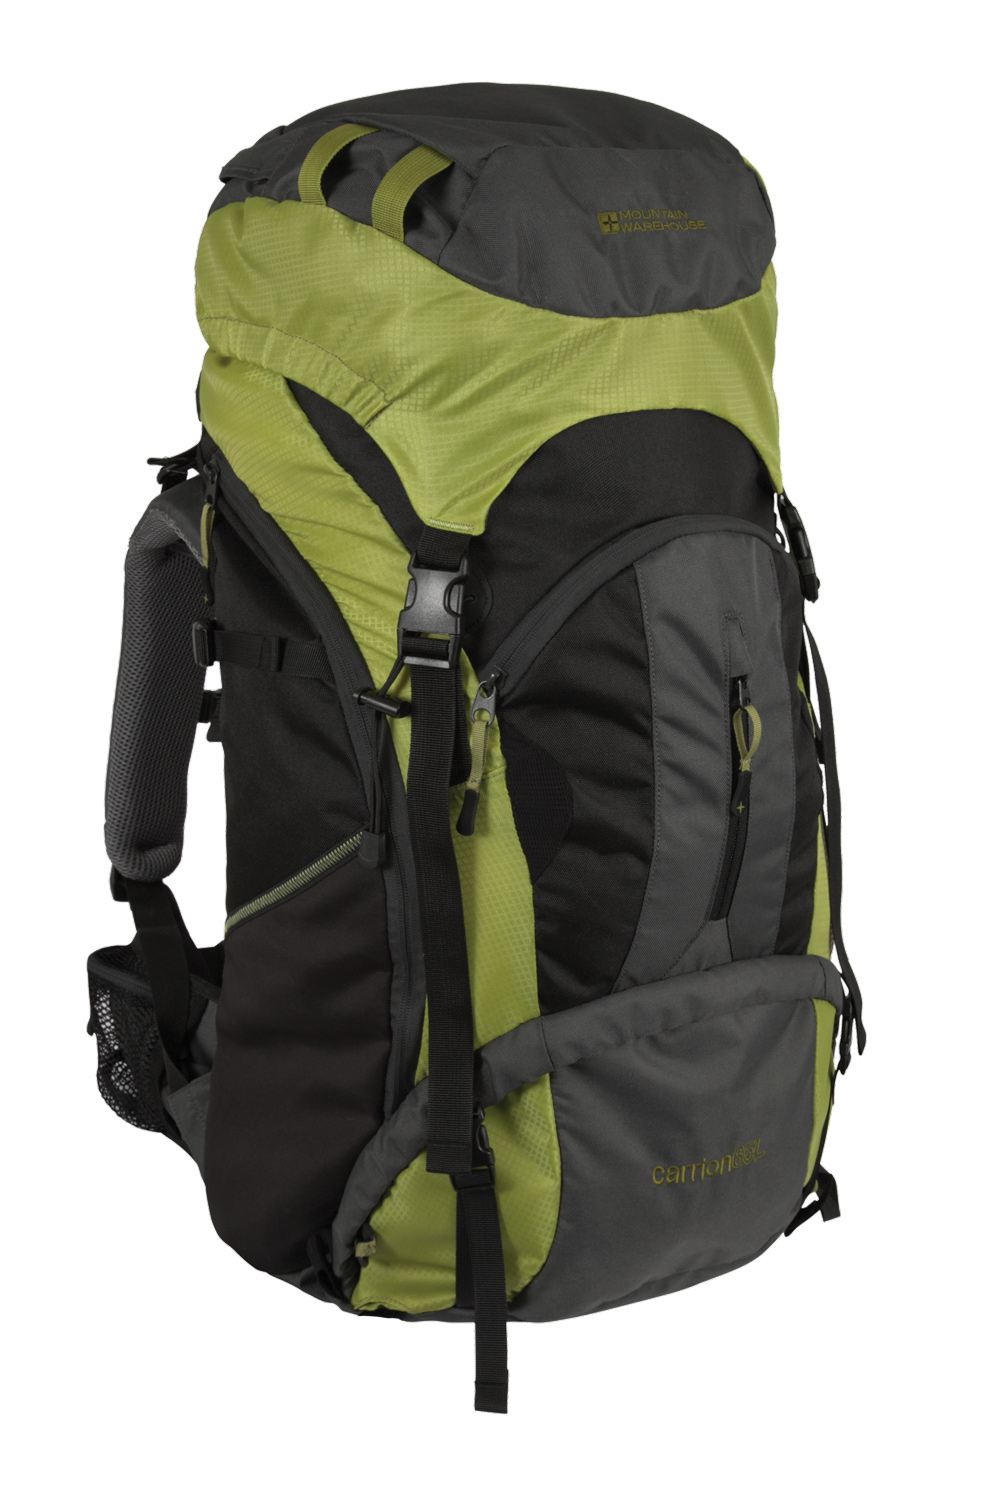 how to fit a rucksack how to fit a backpack expert advice. Black Bedroom Furniture Sets. Home Design Ideas